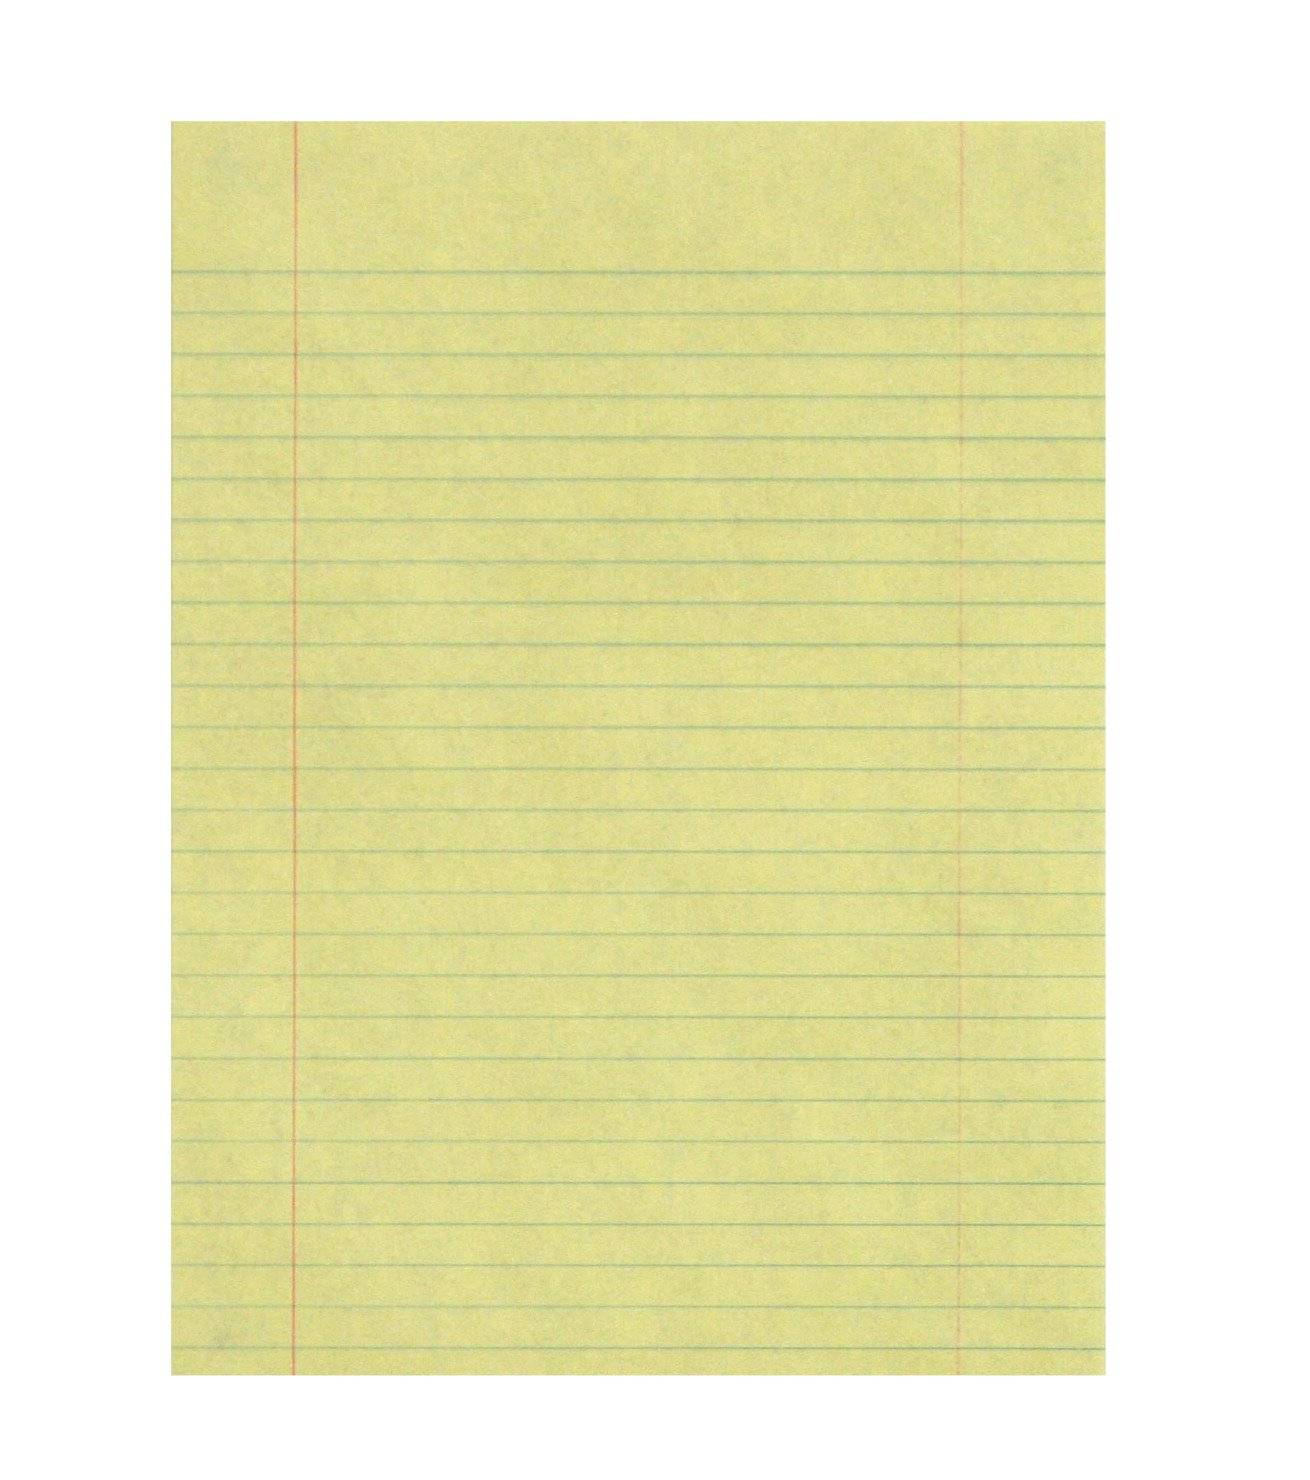 School Smart 16 lb Essay and Composition Paper with Margin - 8 in x 10 1/2 in - Ream of 500 - Yellow